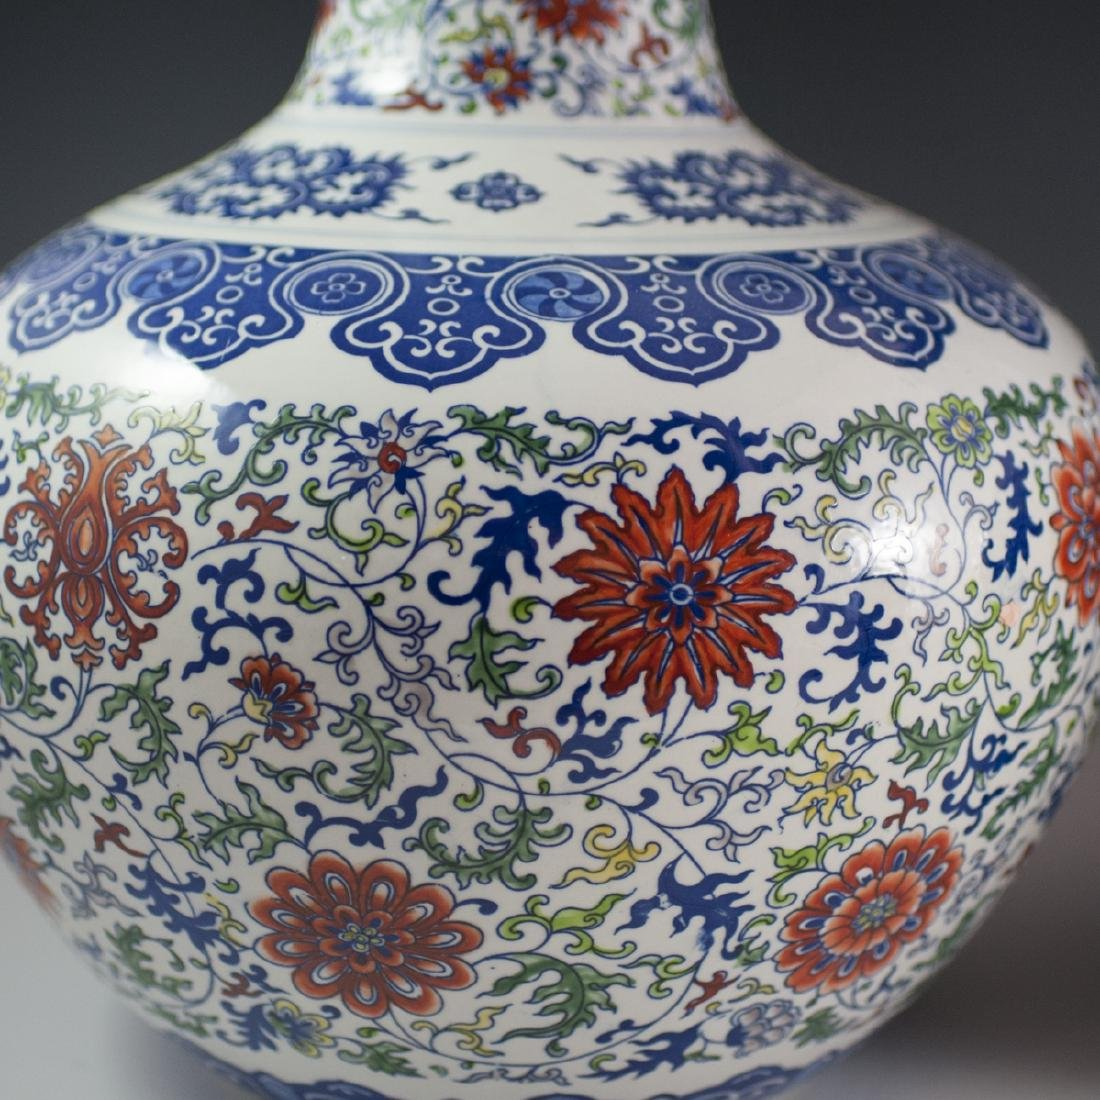 Large Chinese Wucai Tianquiping Porcelain Vases - 4